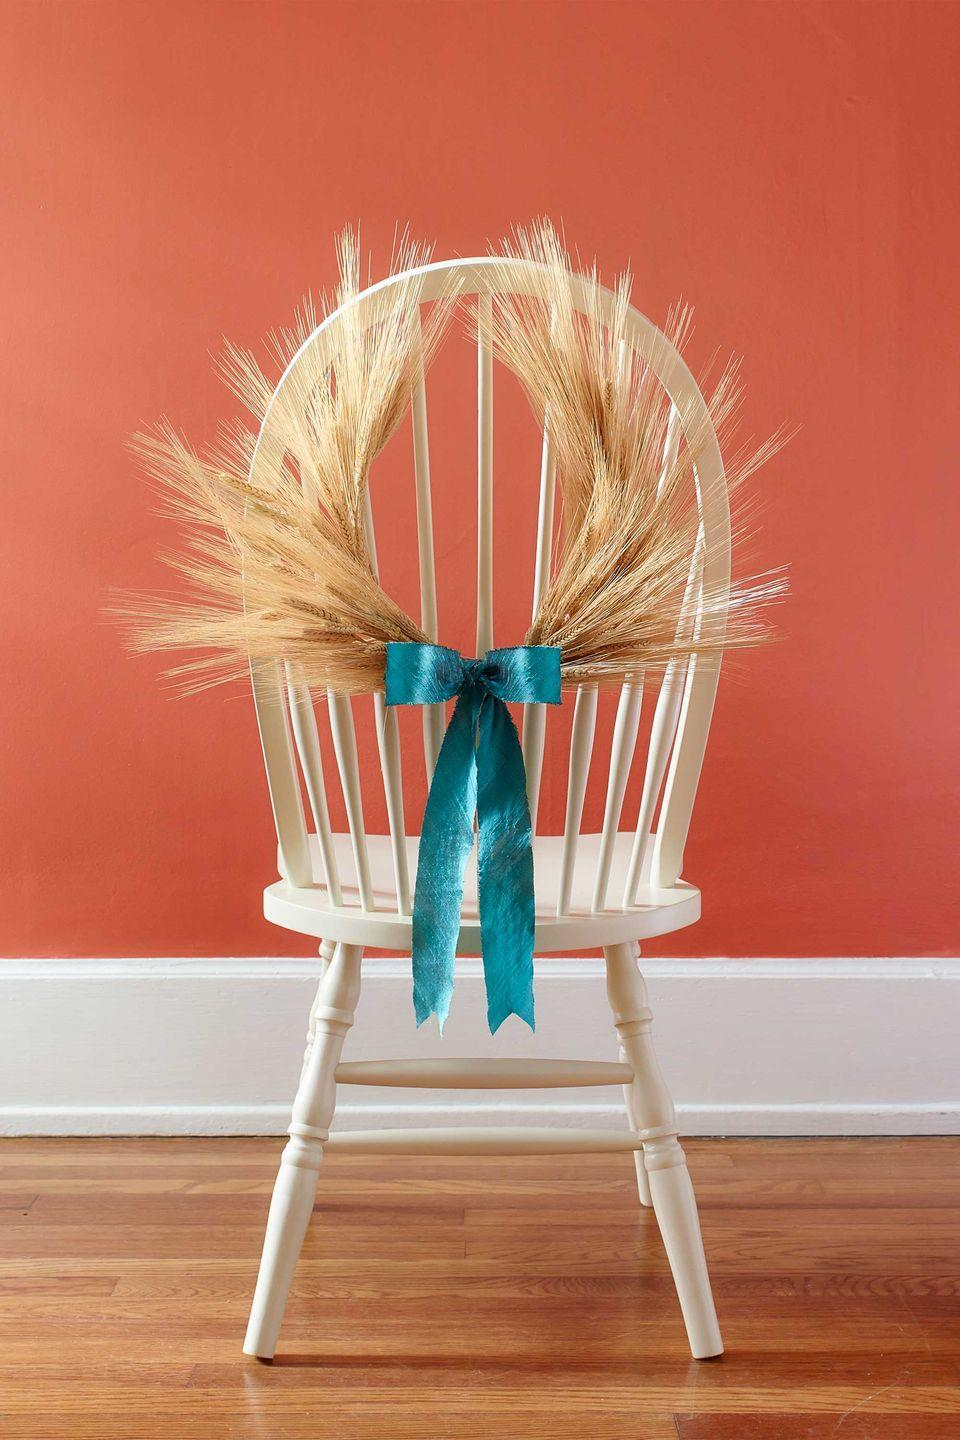 "<p>Spruce up plain chair backs with this seasonal embellishment.</p><p><strong>Step 1: </strong>Cut a 24-inch length of wire and bend it into a horseshoe shape. (We used armature wire, but any wire, including a coat hanger, will work.) Wrap the wire, including any sharp ends, with masking tape.</p><p><strong><strong>Step 2:</strong> </strong>Gather five pieces of dried wheat and trim the stems to 2 ½ inches long. Wrap stems together with <a href=""https://www.amazon.com/DECORA-Gauge-White-Floral-Package/dp/B01A3SBLEW/ref=sr_1_1"" rel=""nofollow noopener"" target=""_blank"" data-ylk=""slk:white, cloth-covered floral wire"" class=""link rapid-noclick-resp"">white, cloth-covered floral wire</a> to make a bundle. Make 9 more bundles of 5 stems each, for a total of 10 bundles.</p><p><strong>Step 3:</strong> Attach the bundles to the horseshoe-shaped wire with floral wire. Place 5 on the right and 5 on the left, leaving a 2-inch space at the center. Tie a bow with 1 yard of ribbon in this space.</p><p><strong><a class=""link rapid-noclick-resp"" href=""https://www.amazon.com/Dried-Triticum-Natural-Wheat-Stalk/dp/B00ZOF9G6A/?tag=syn-yahoo-20&ascsubtag=%5Bartid%7C10050.g.2063%5Bsrc%7Cyahoo-us"" rel=""nofollow noopener"" target=""_blank"" data-ylk=""slk:SHOP DRIED WHEAT"">SHOP DRIED WHEAT</a></strong> </p>"